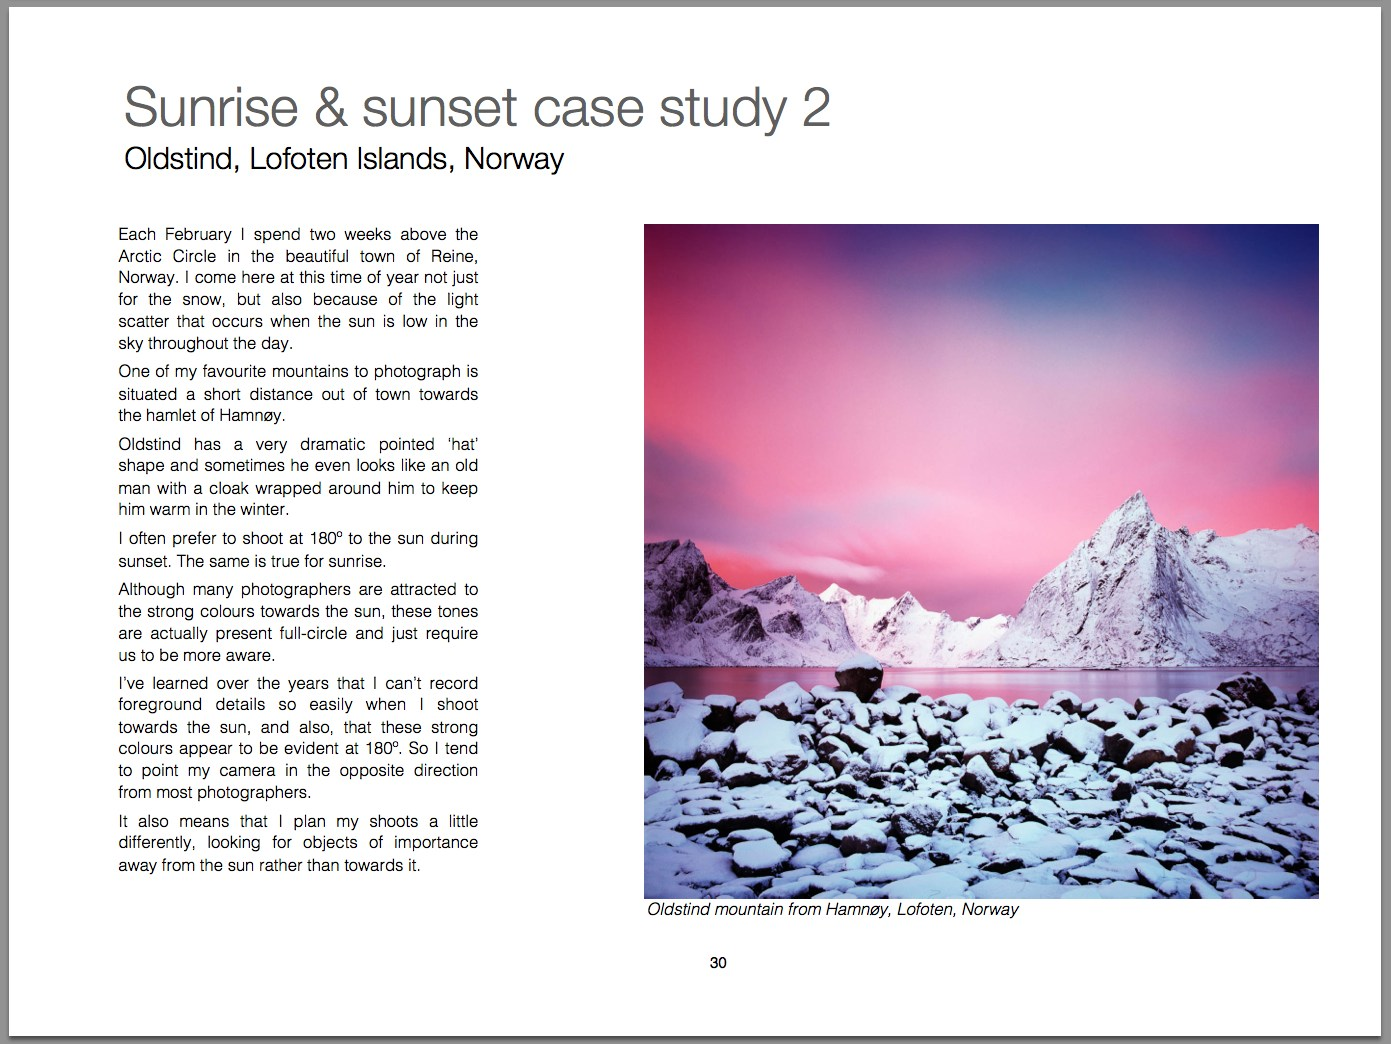 Sample page: Lofoten Islands case study